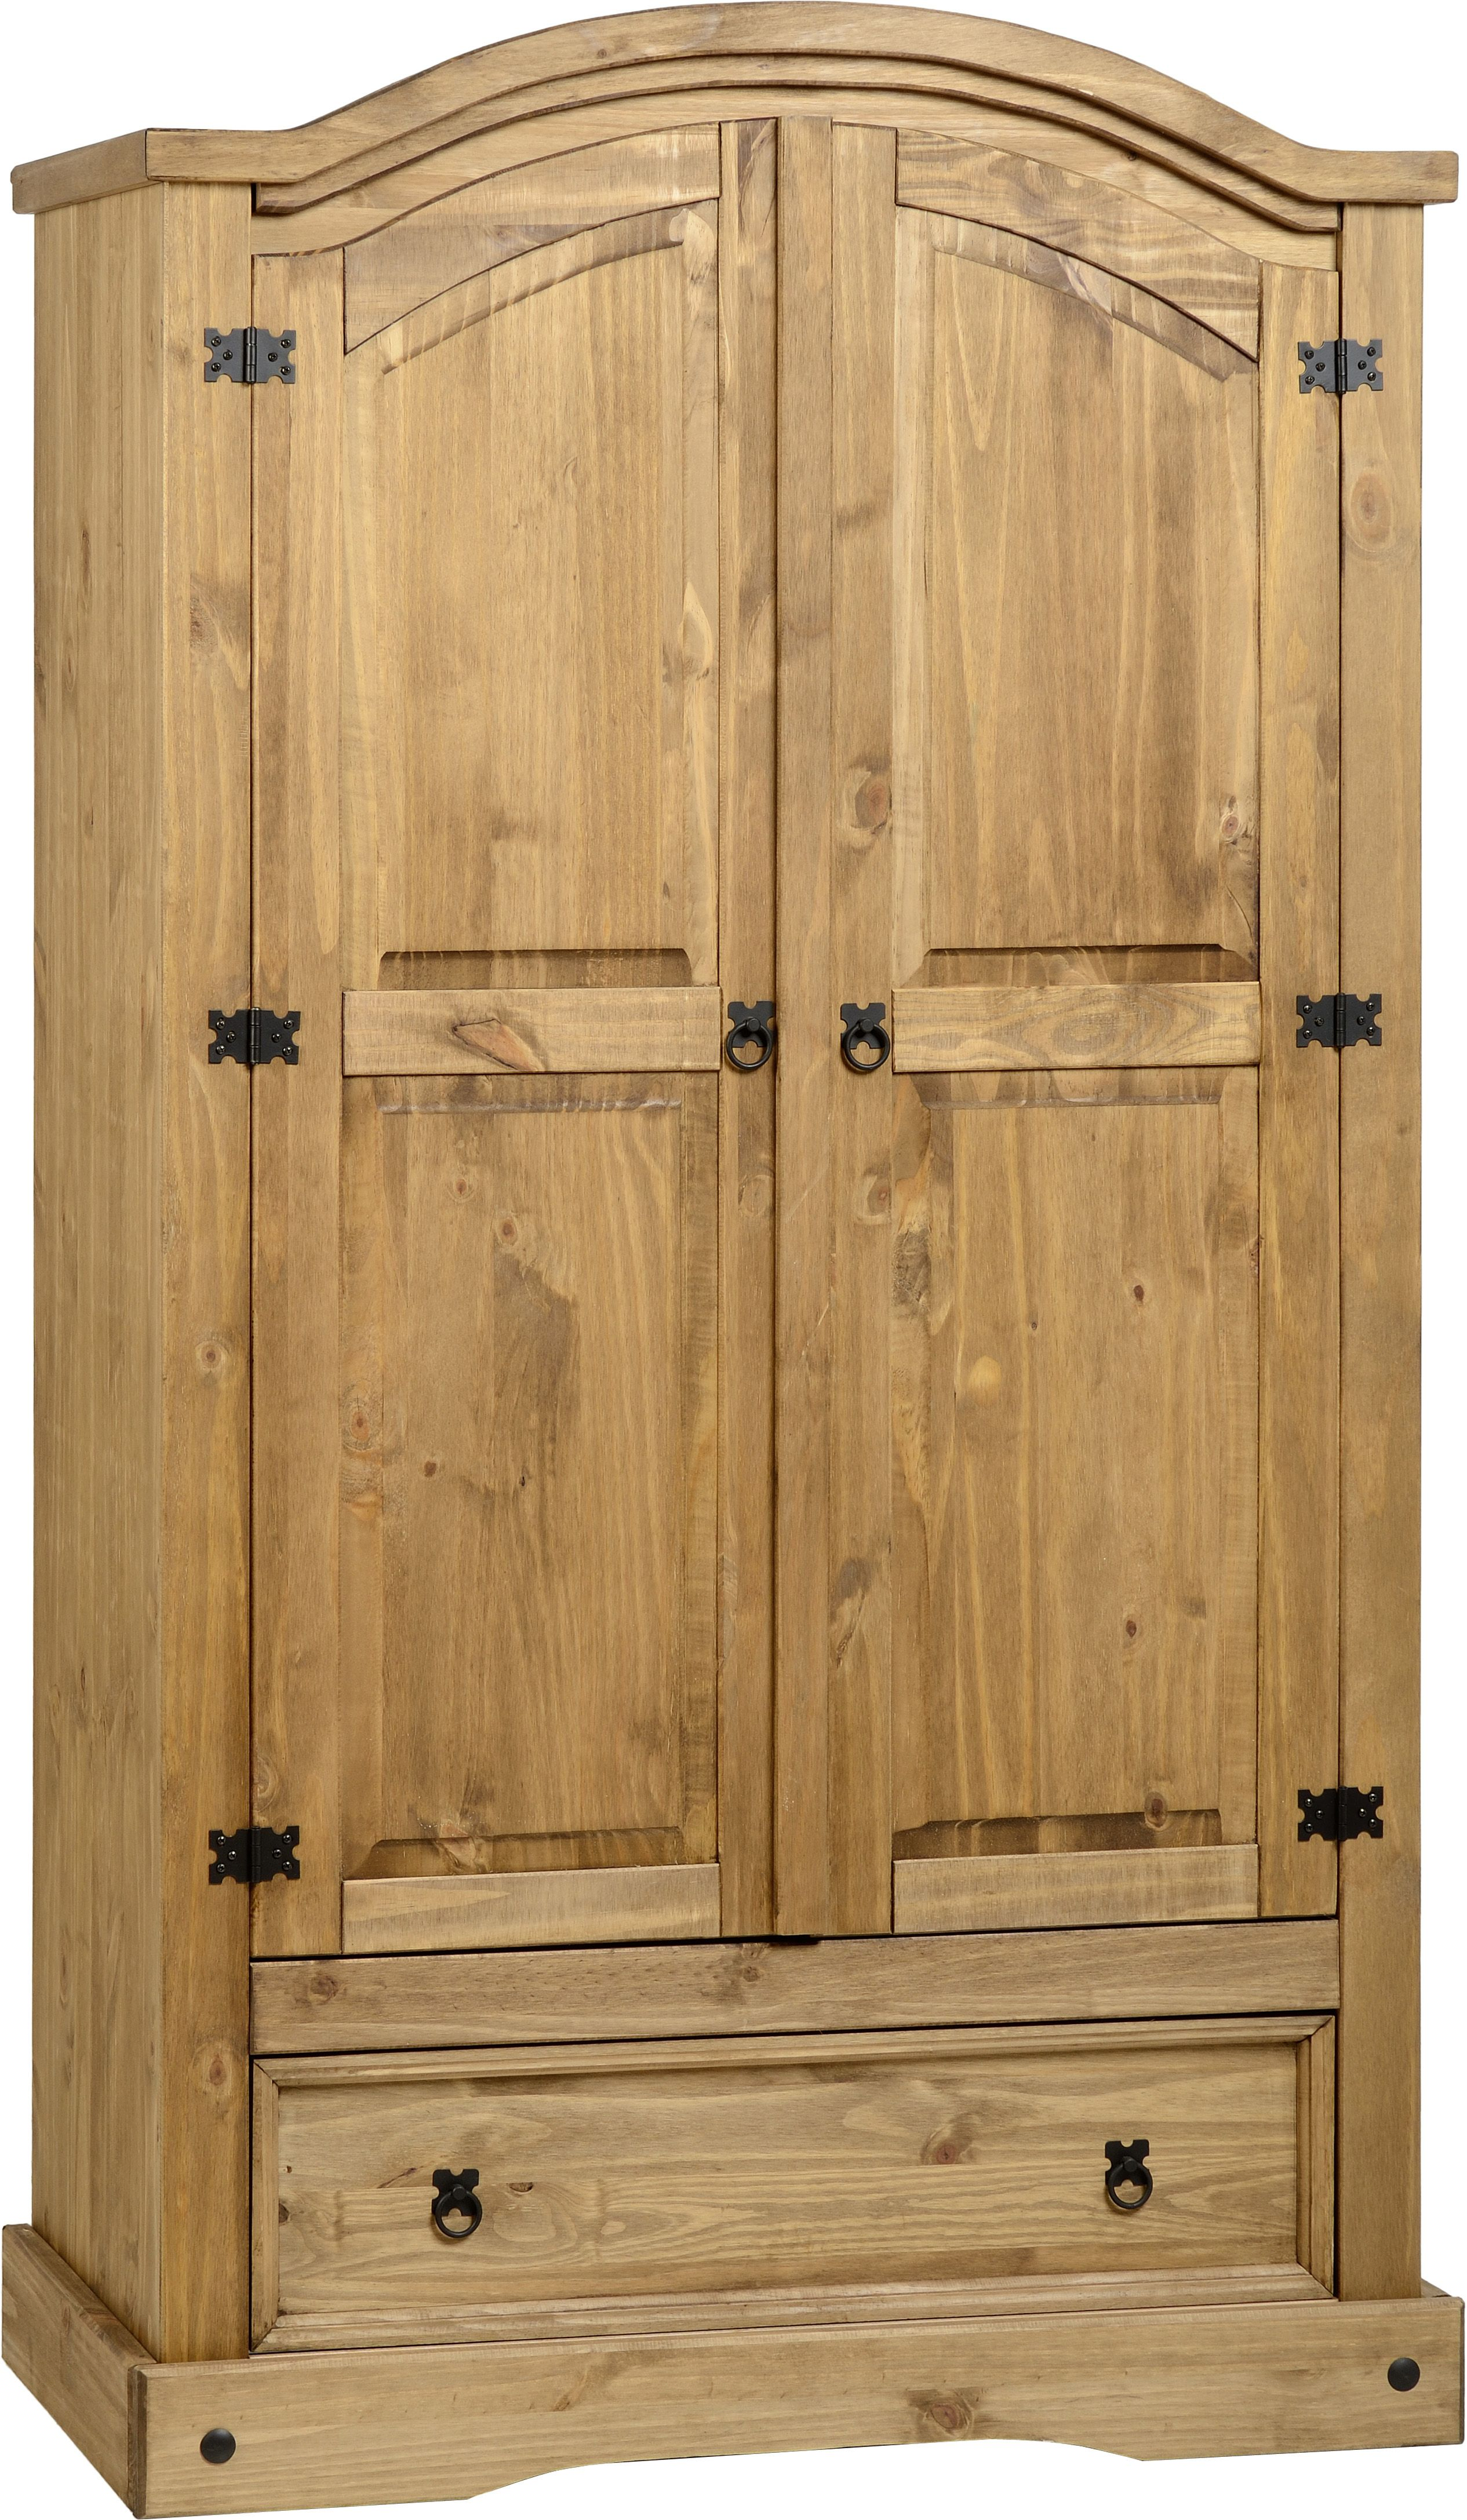 This Acapulco Wardrobe In Distressed Waxed Pine Is Available From Wrexham Warehouse Furniture Pine Wardrobe Pine Bedroom Furniture Wardrobe Furniture